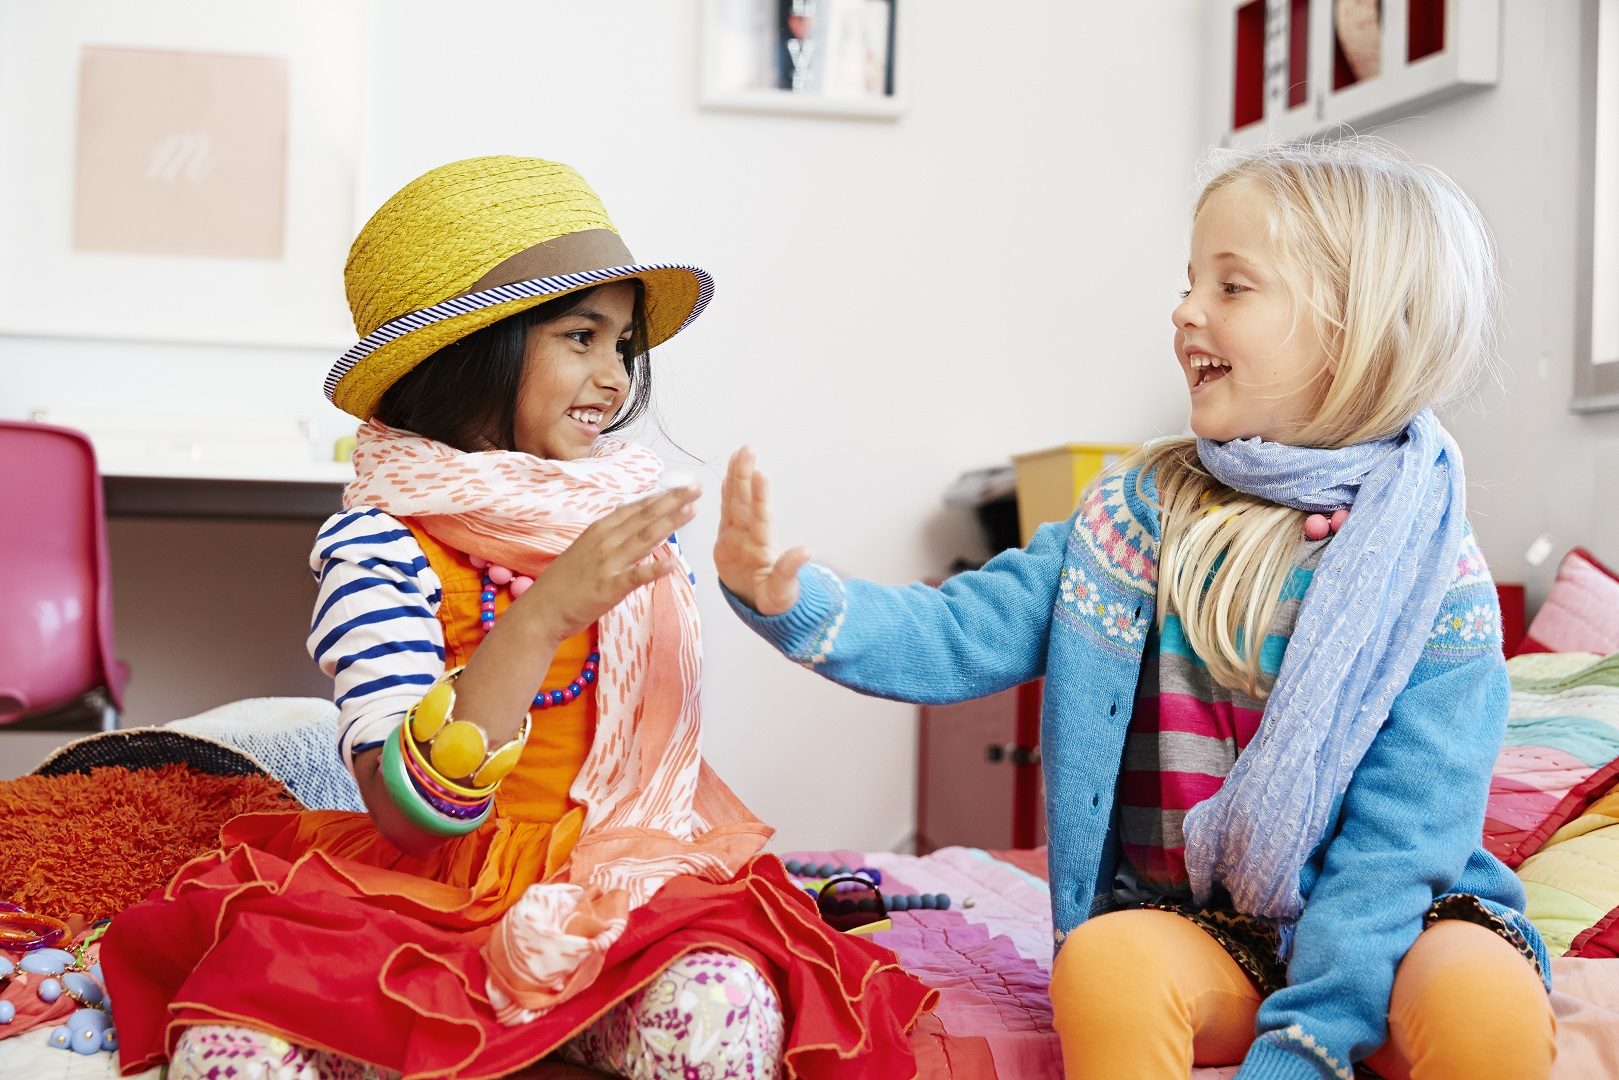 Help Your Child Build Friendships